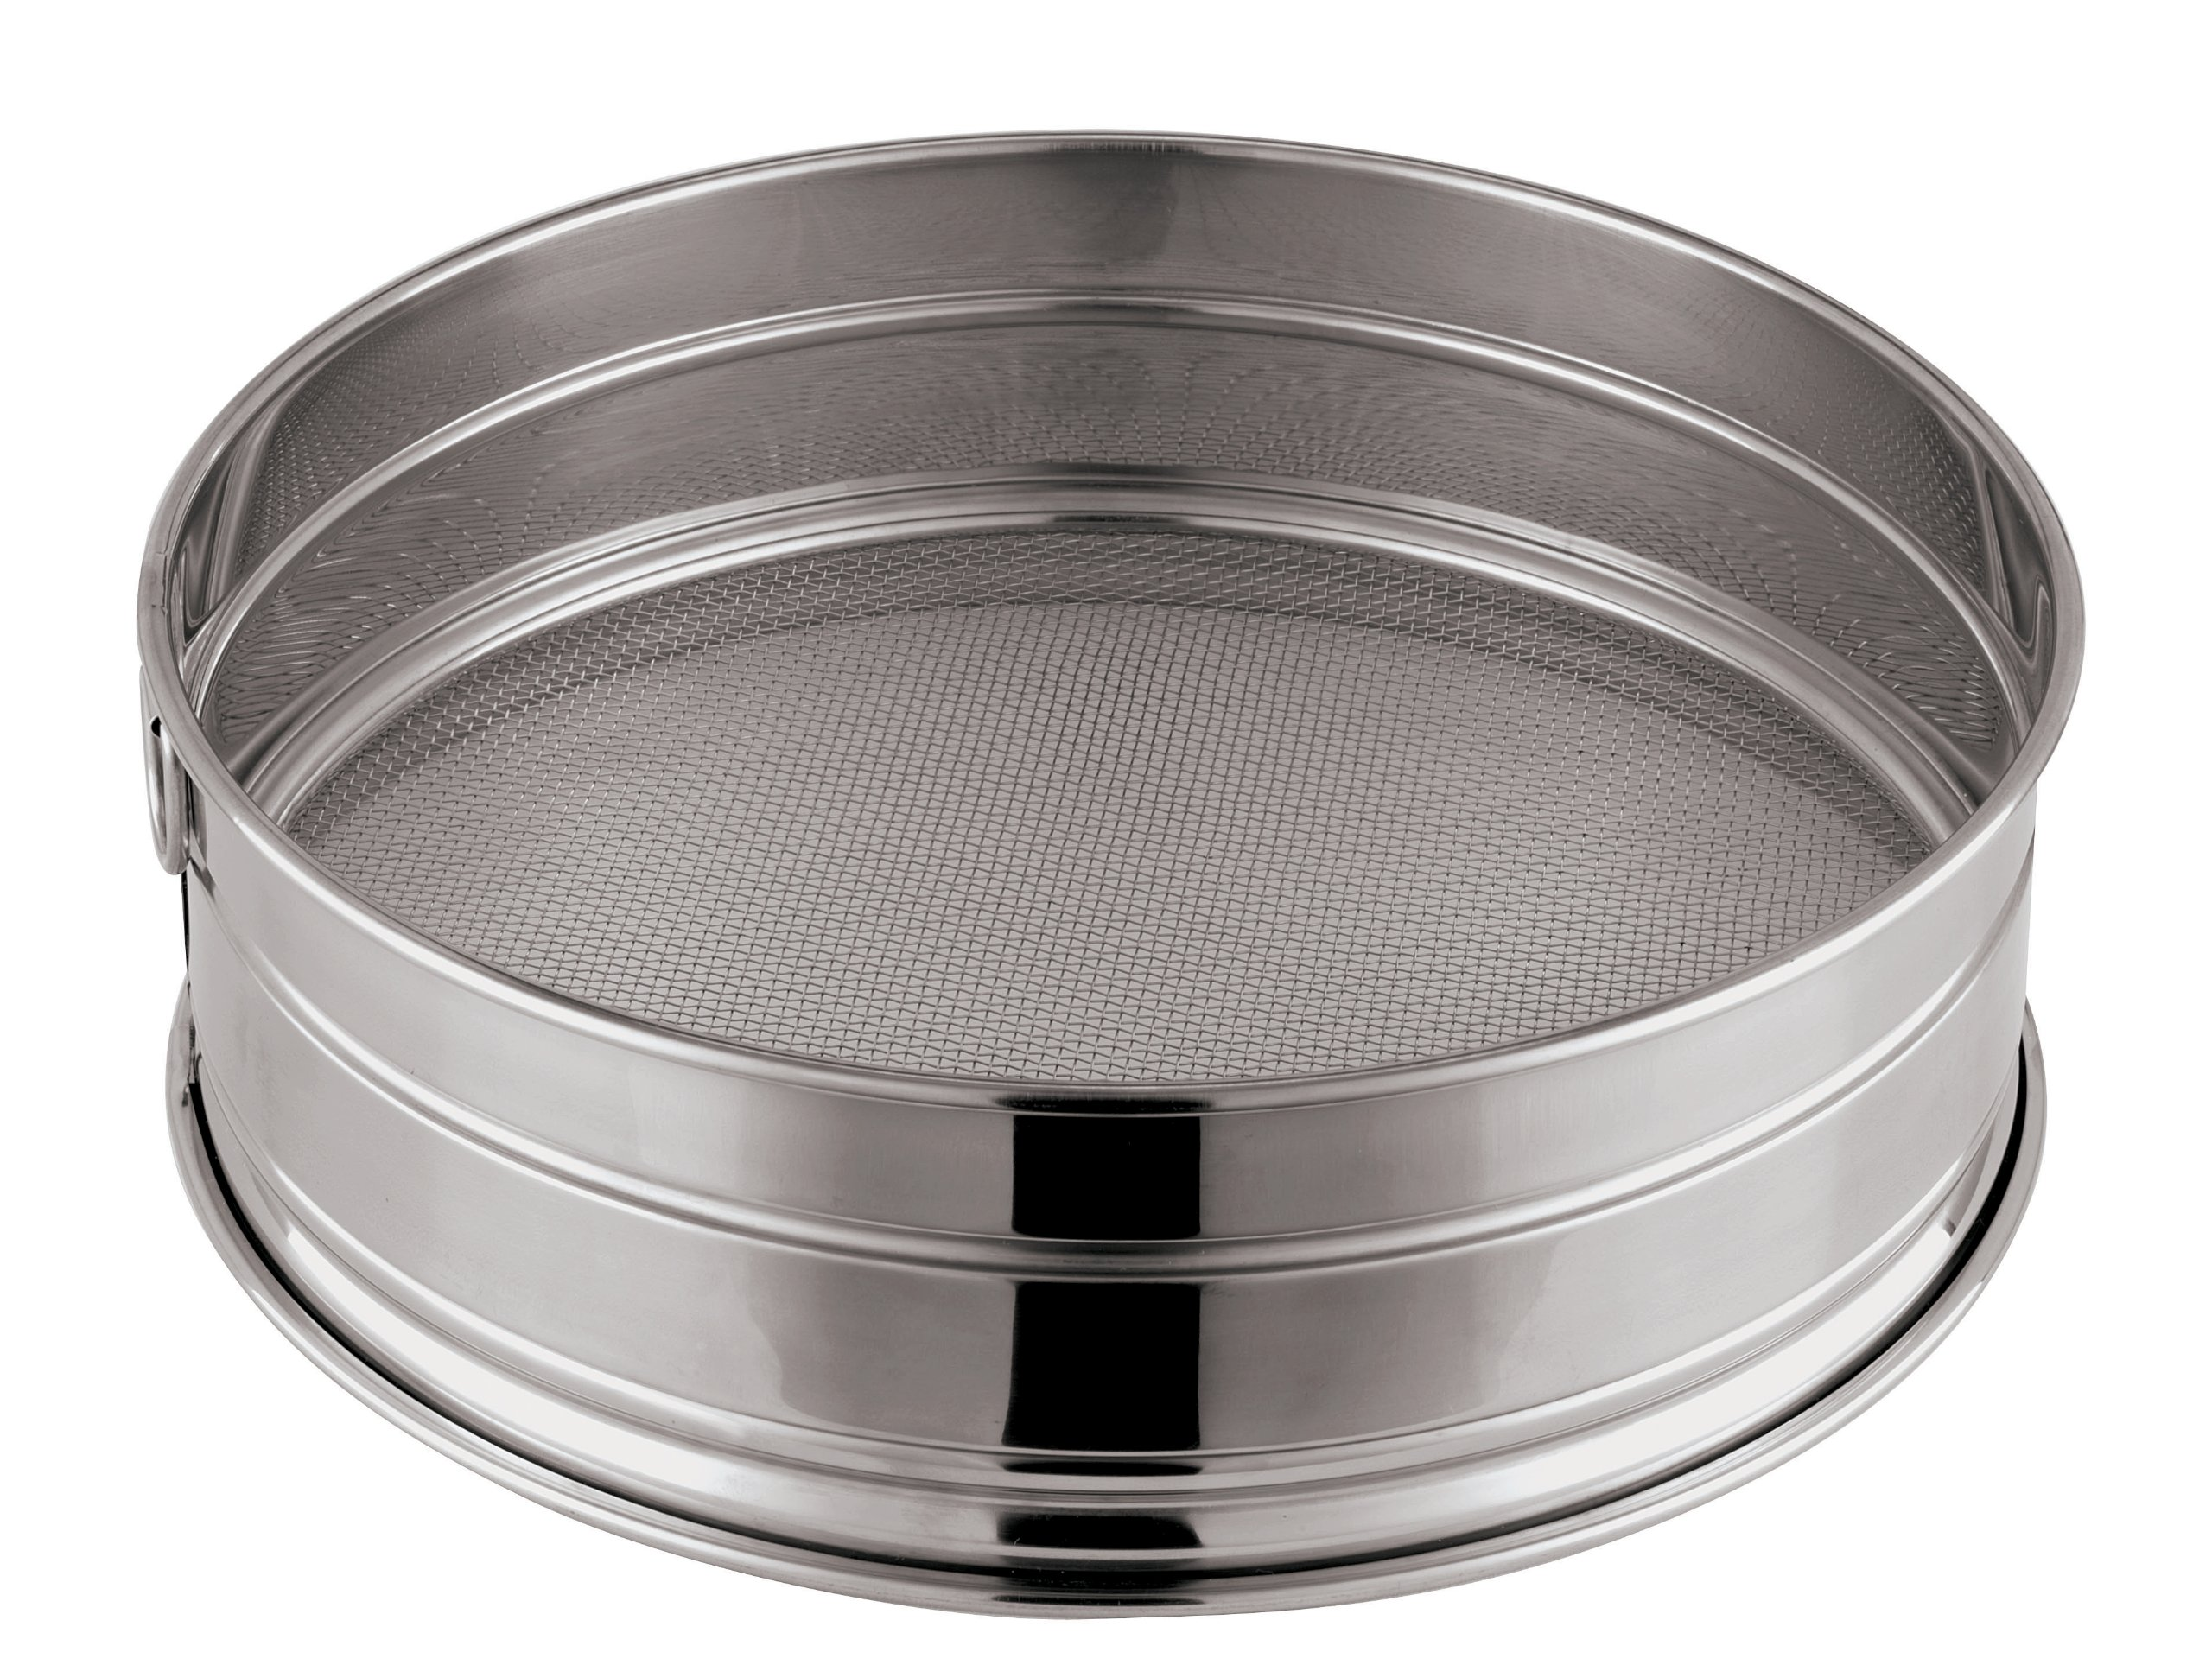 Paderno World Cuisine 11-7/8-Inch Stainless-Steel Medium Mesh Flour Sieve by Paderno World Cuisine